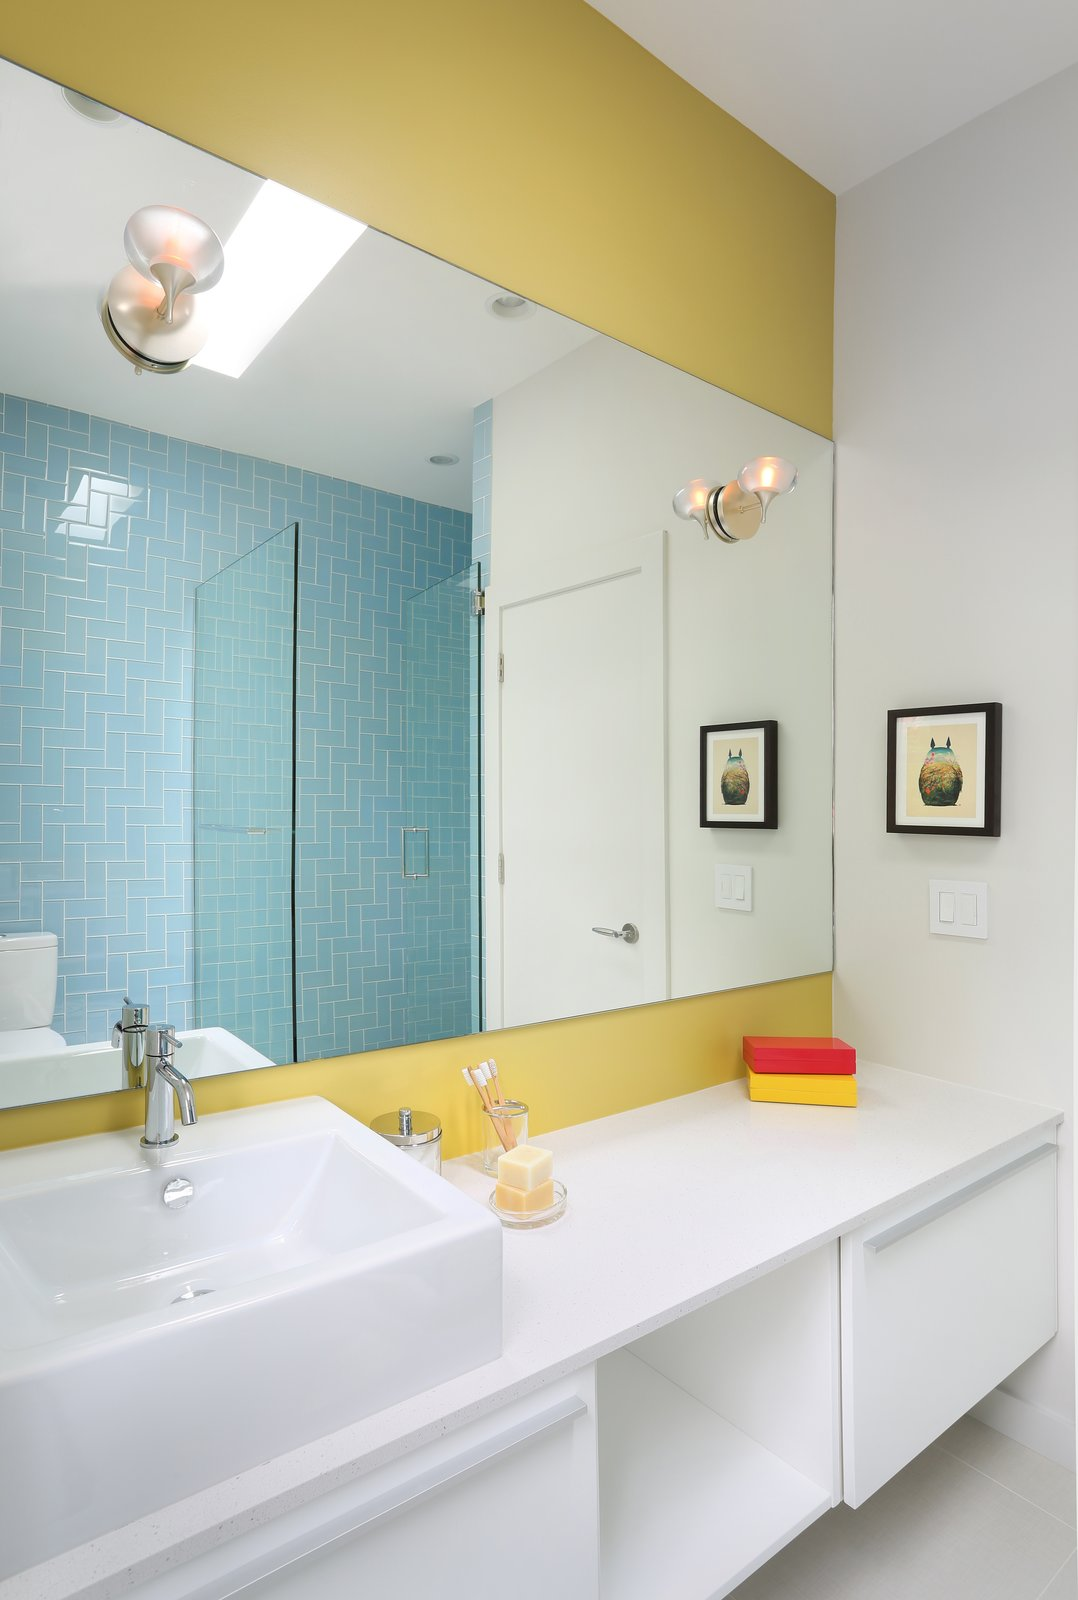 Benjamin Moore's Mustard Field paint adds a vibrant touch to another bathroom in the house.  Lakeview by Diana Budds